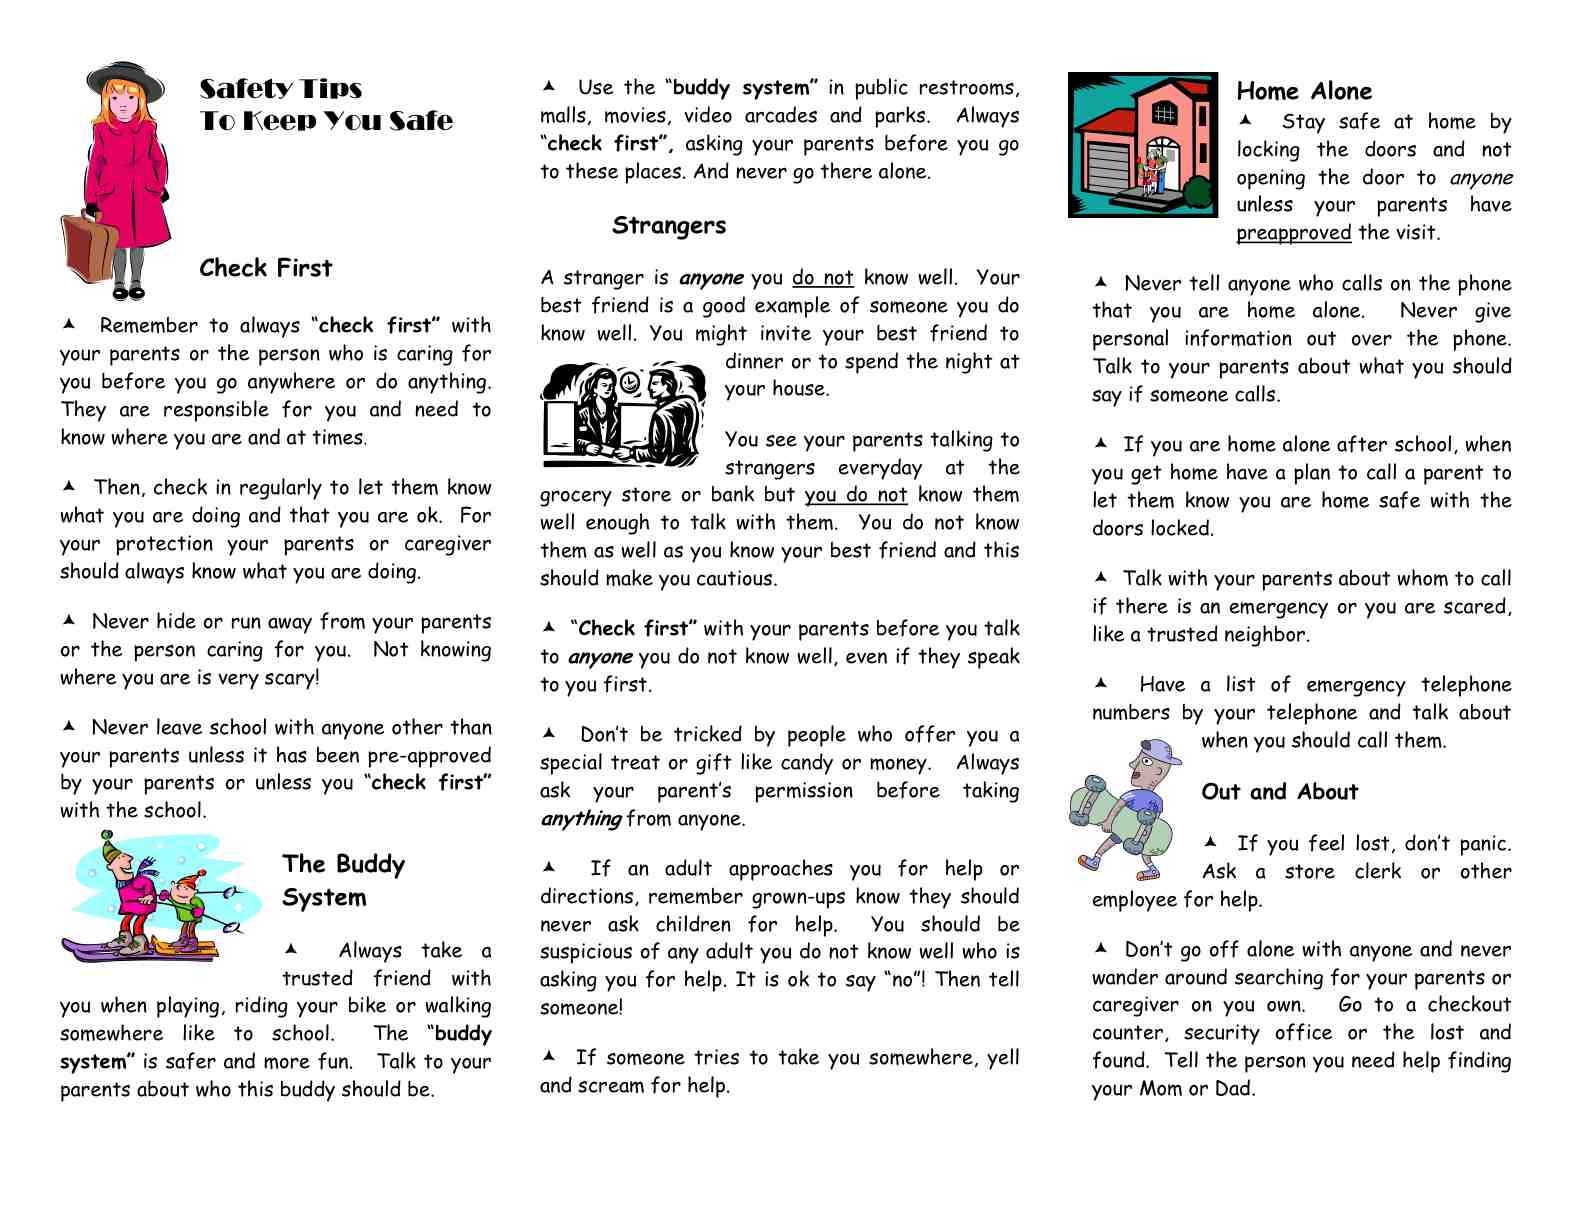 Carlsbad Police Department Safety Tips for Children2010